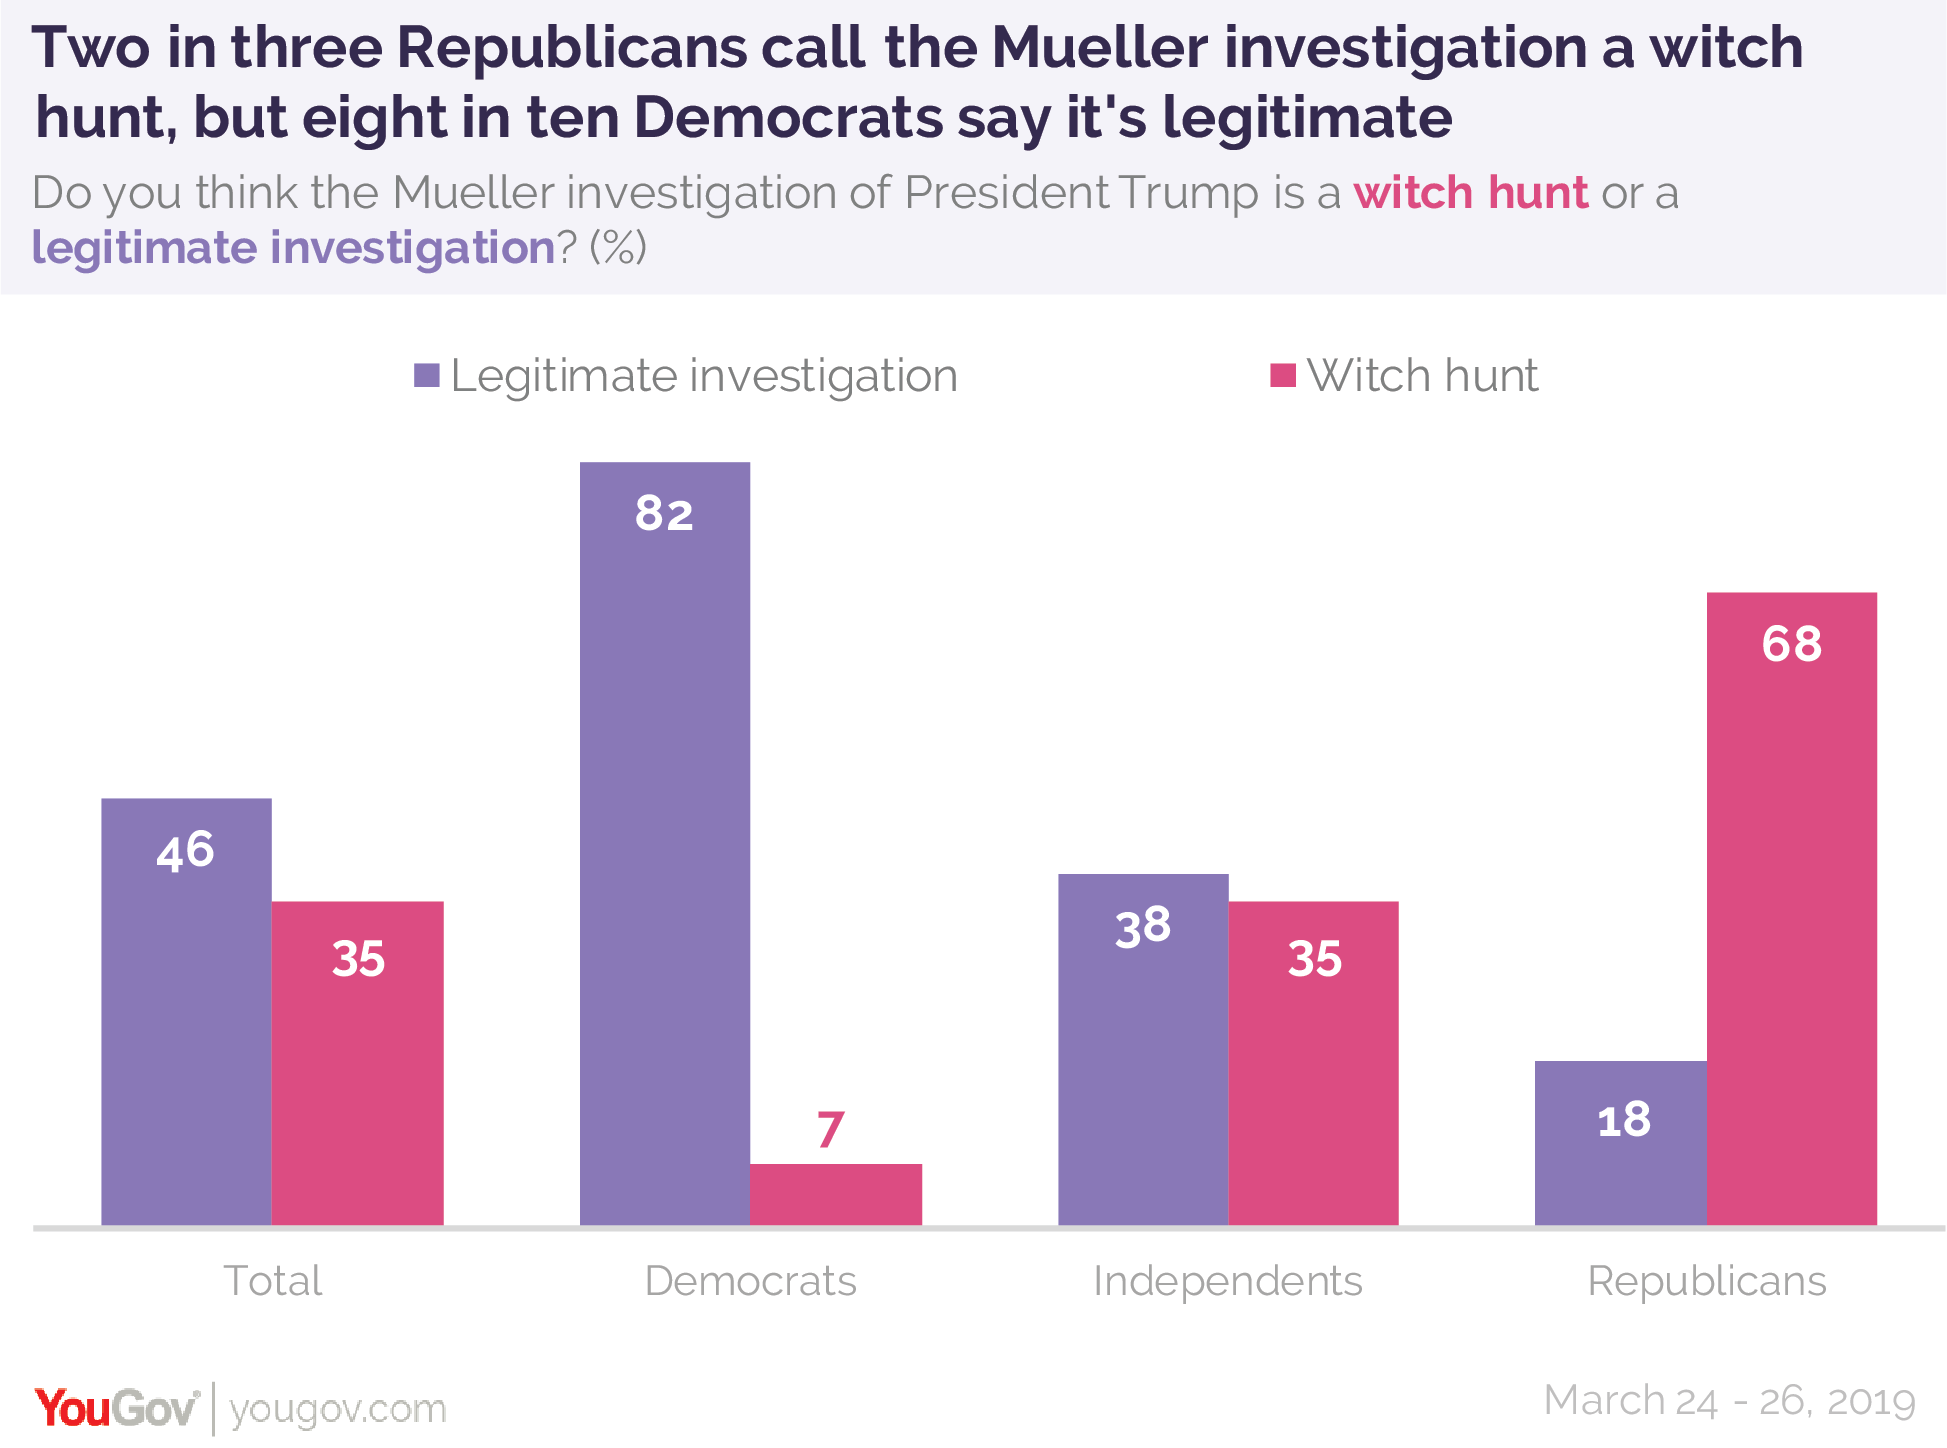 Two in three Republicans call the Mueller investigation a witch hunt but eight in ten Democrats say it's legitimate